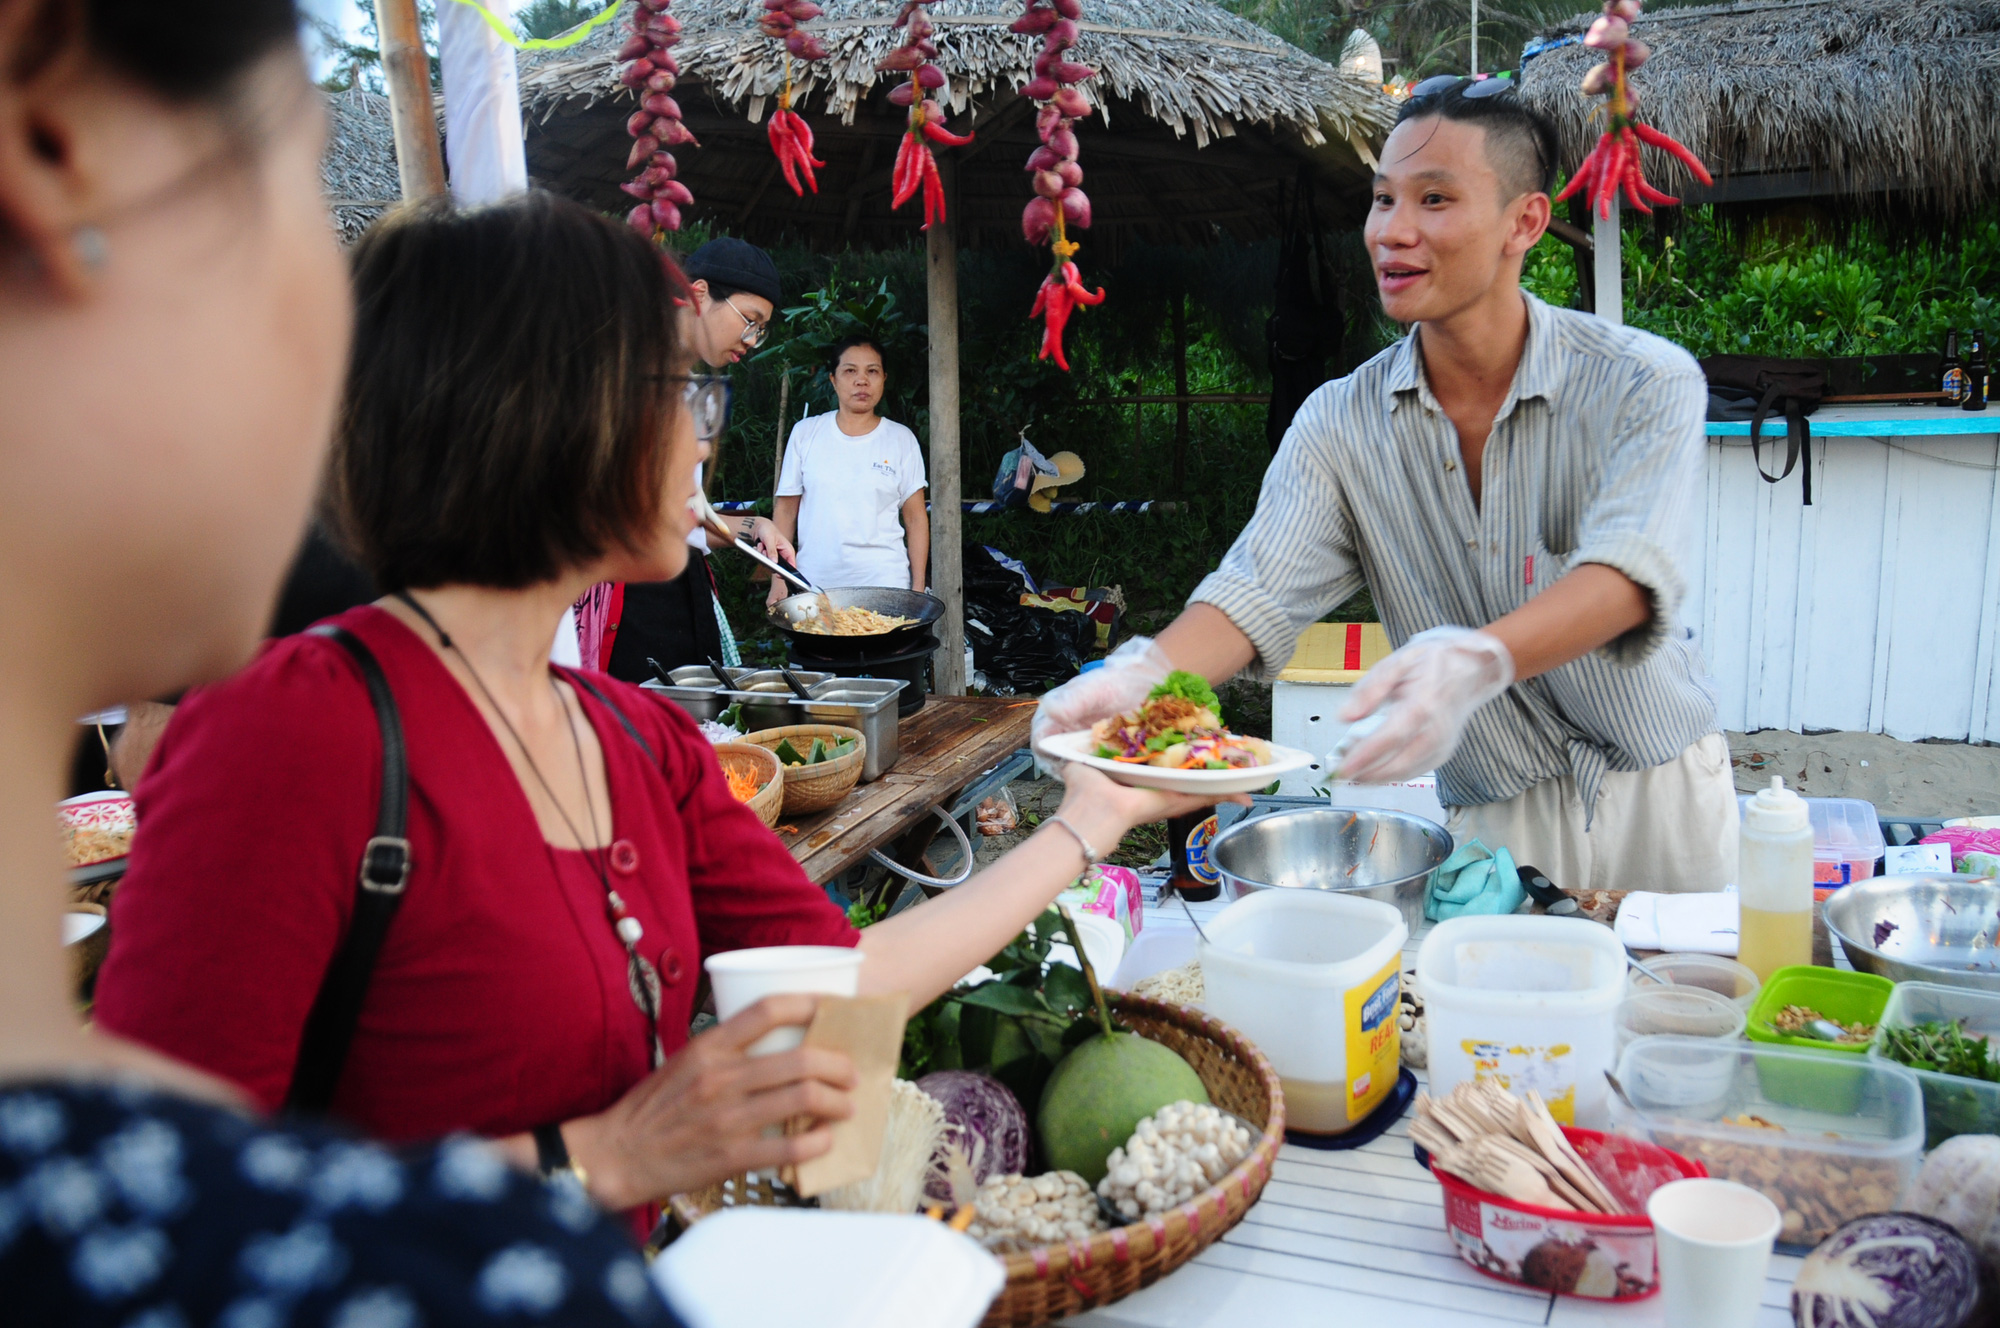 A woman receives food cooked by a chef at the 2020 An Bang Beach Food & Music Festival in Hoi An City, Quang Nam Province, Vietnam, July 18, 2020. Photo: B.D. / Tuoi Tre